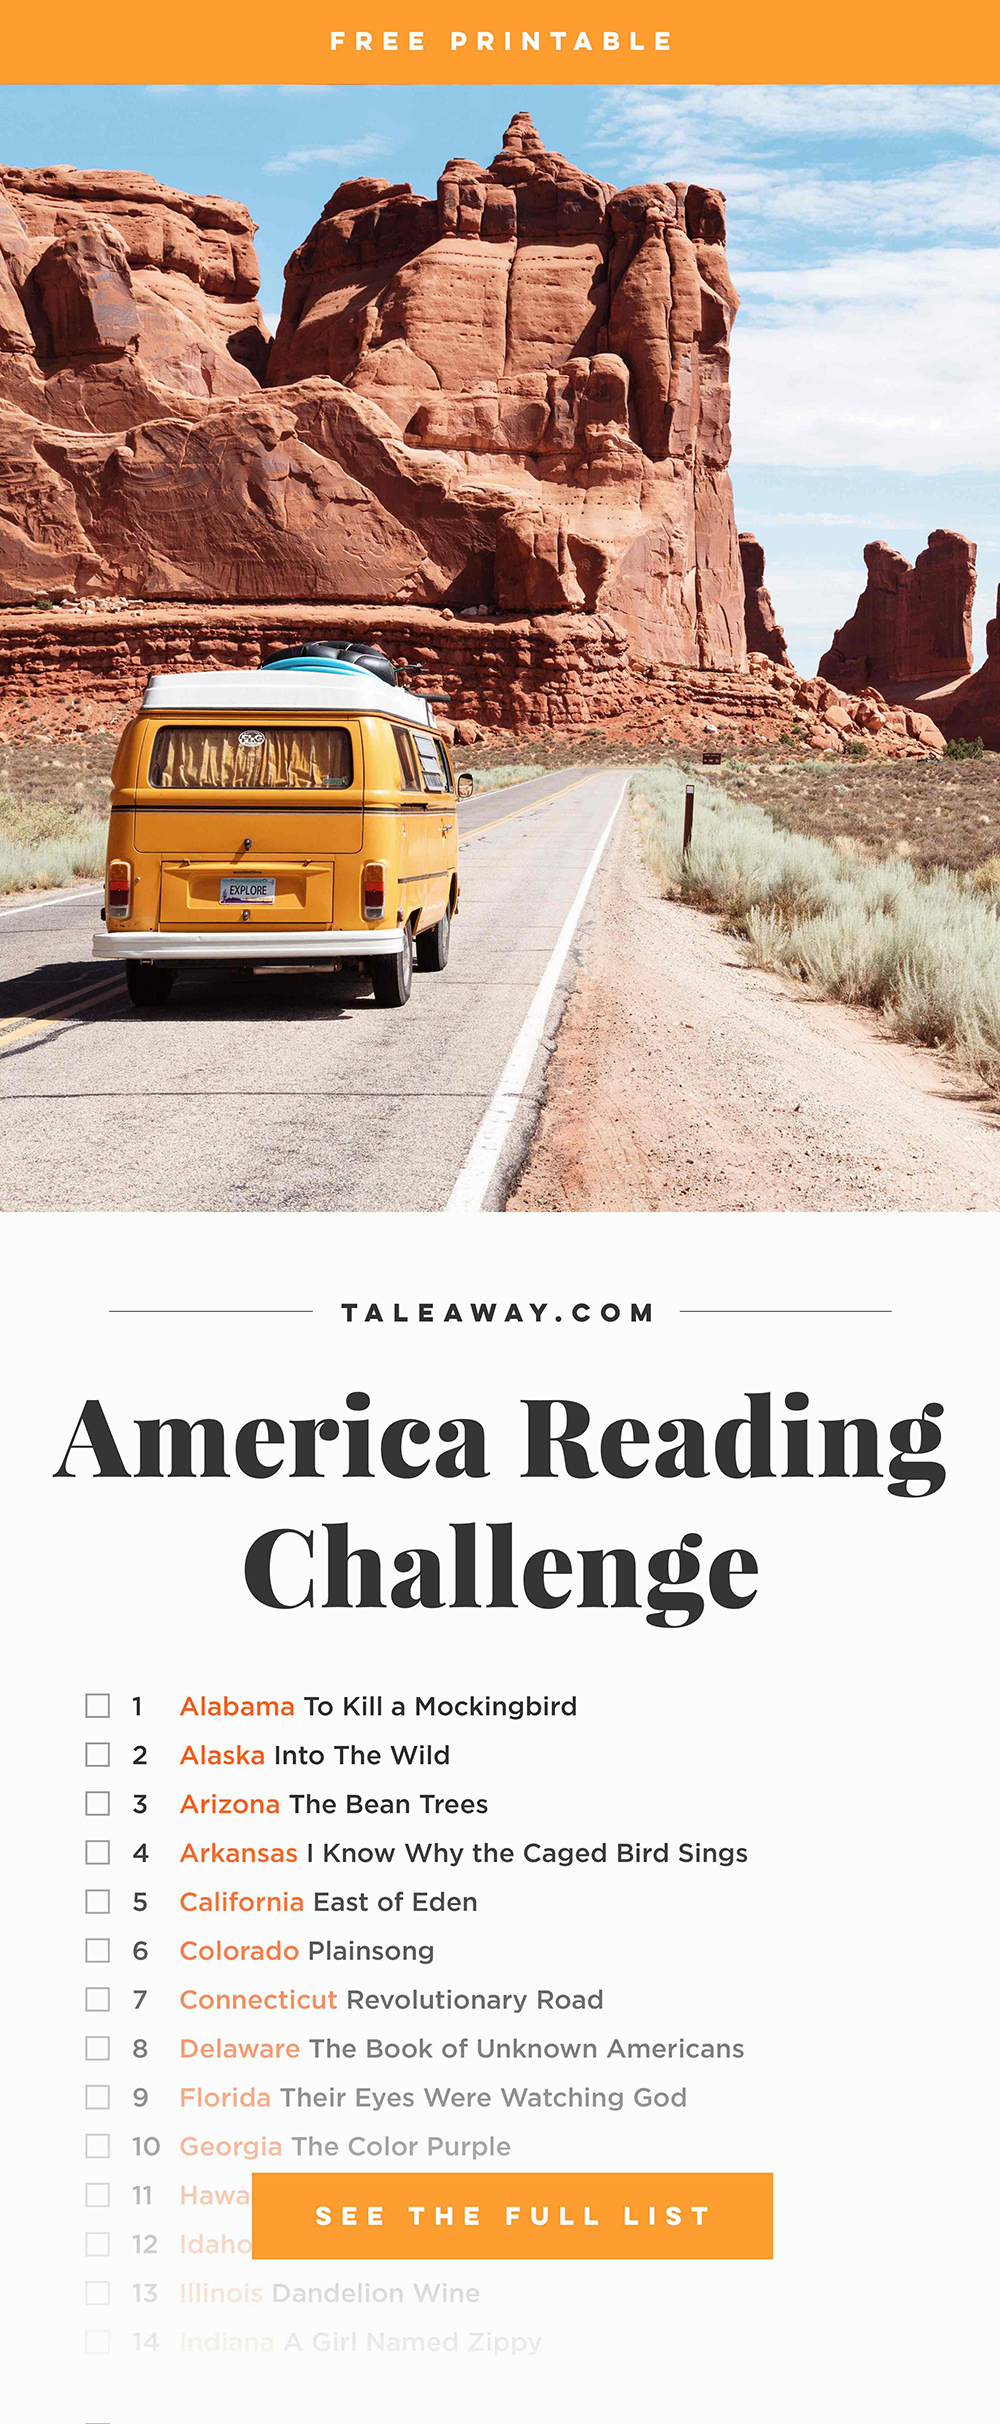 Books Set In Each State. Visit www.taleway.com to find books set around the world. america reading challenge, books set in every state, books from every state, books from each state, most popular book in each state, books about each state, books to read from every state, us road trip, usa book list, american books, american book covers, american books reading list, usa books, us books, book challenge, reading challenge, books set in america, state books series, 50 states book list